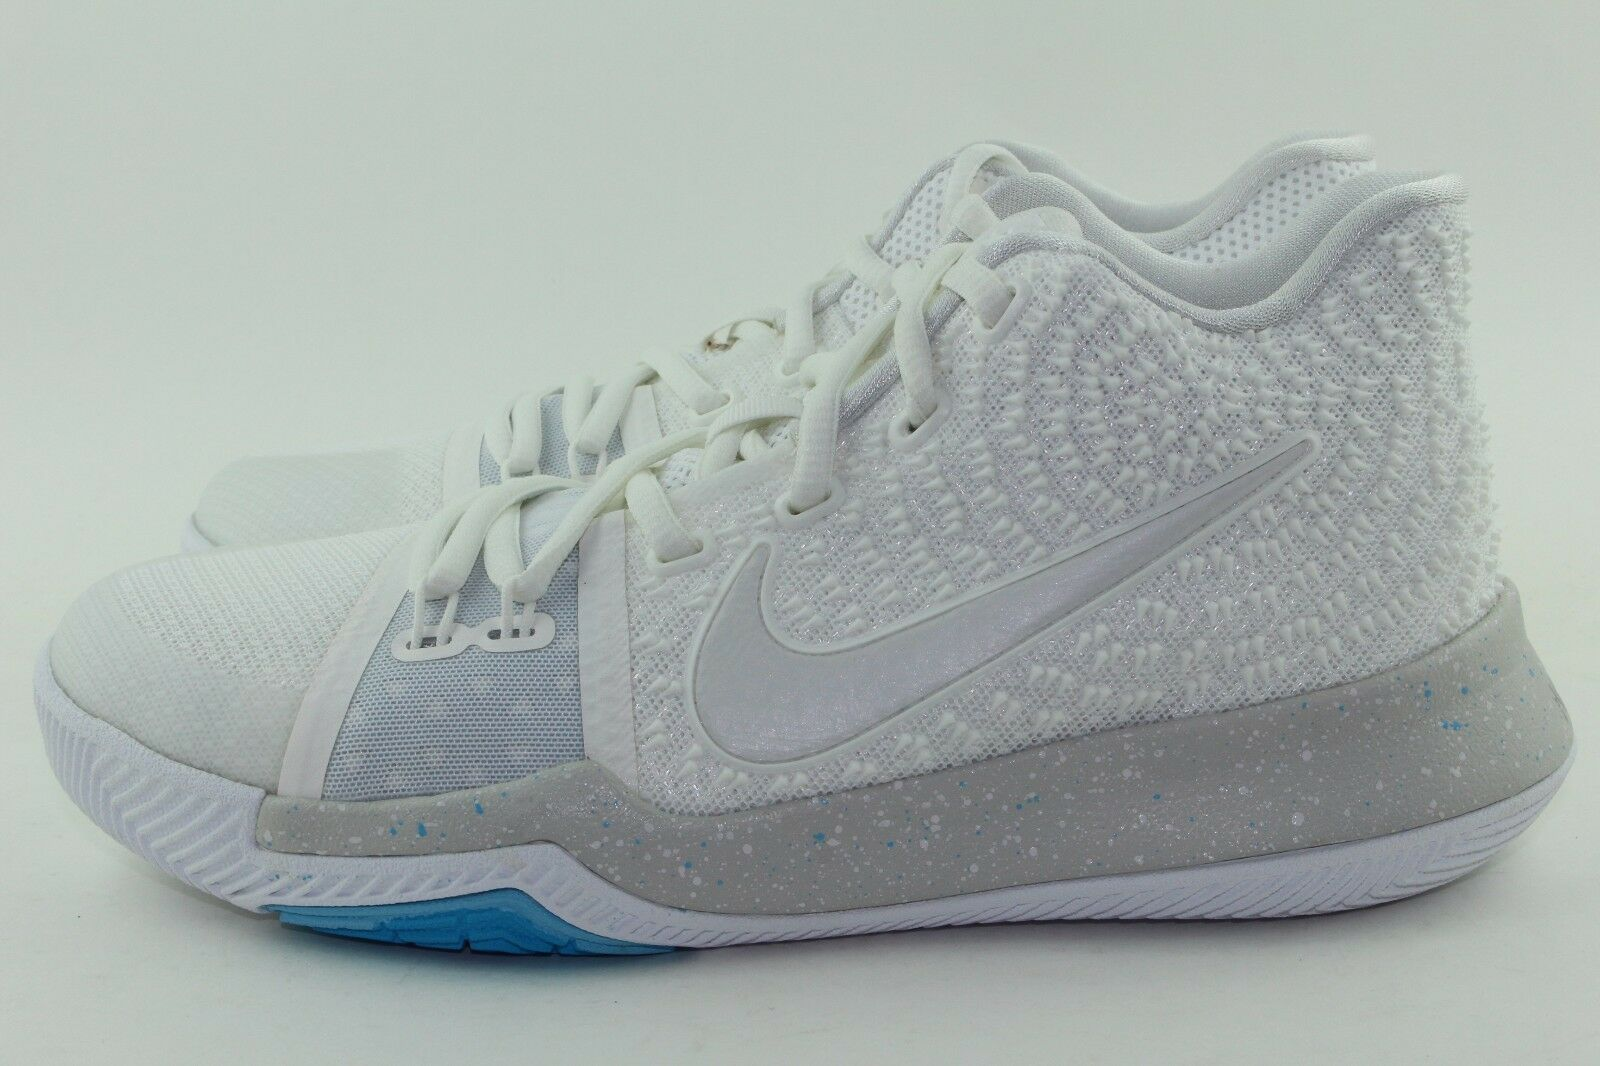 KYRIE 3  IVORY  YOUTH SIZE 4.0 SAME AS WOMAN 5.5 NEW AUTHENTIC RARE COMFORTABLE